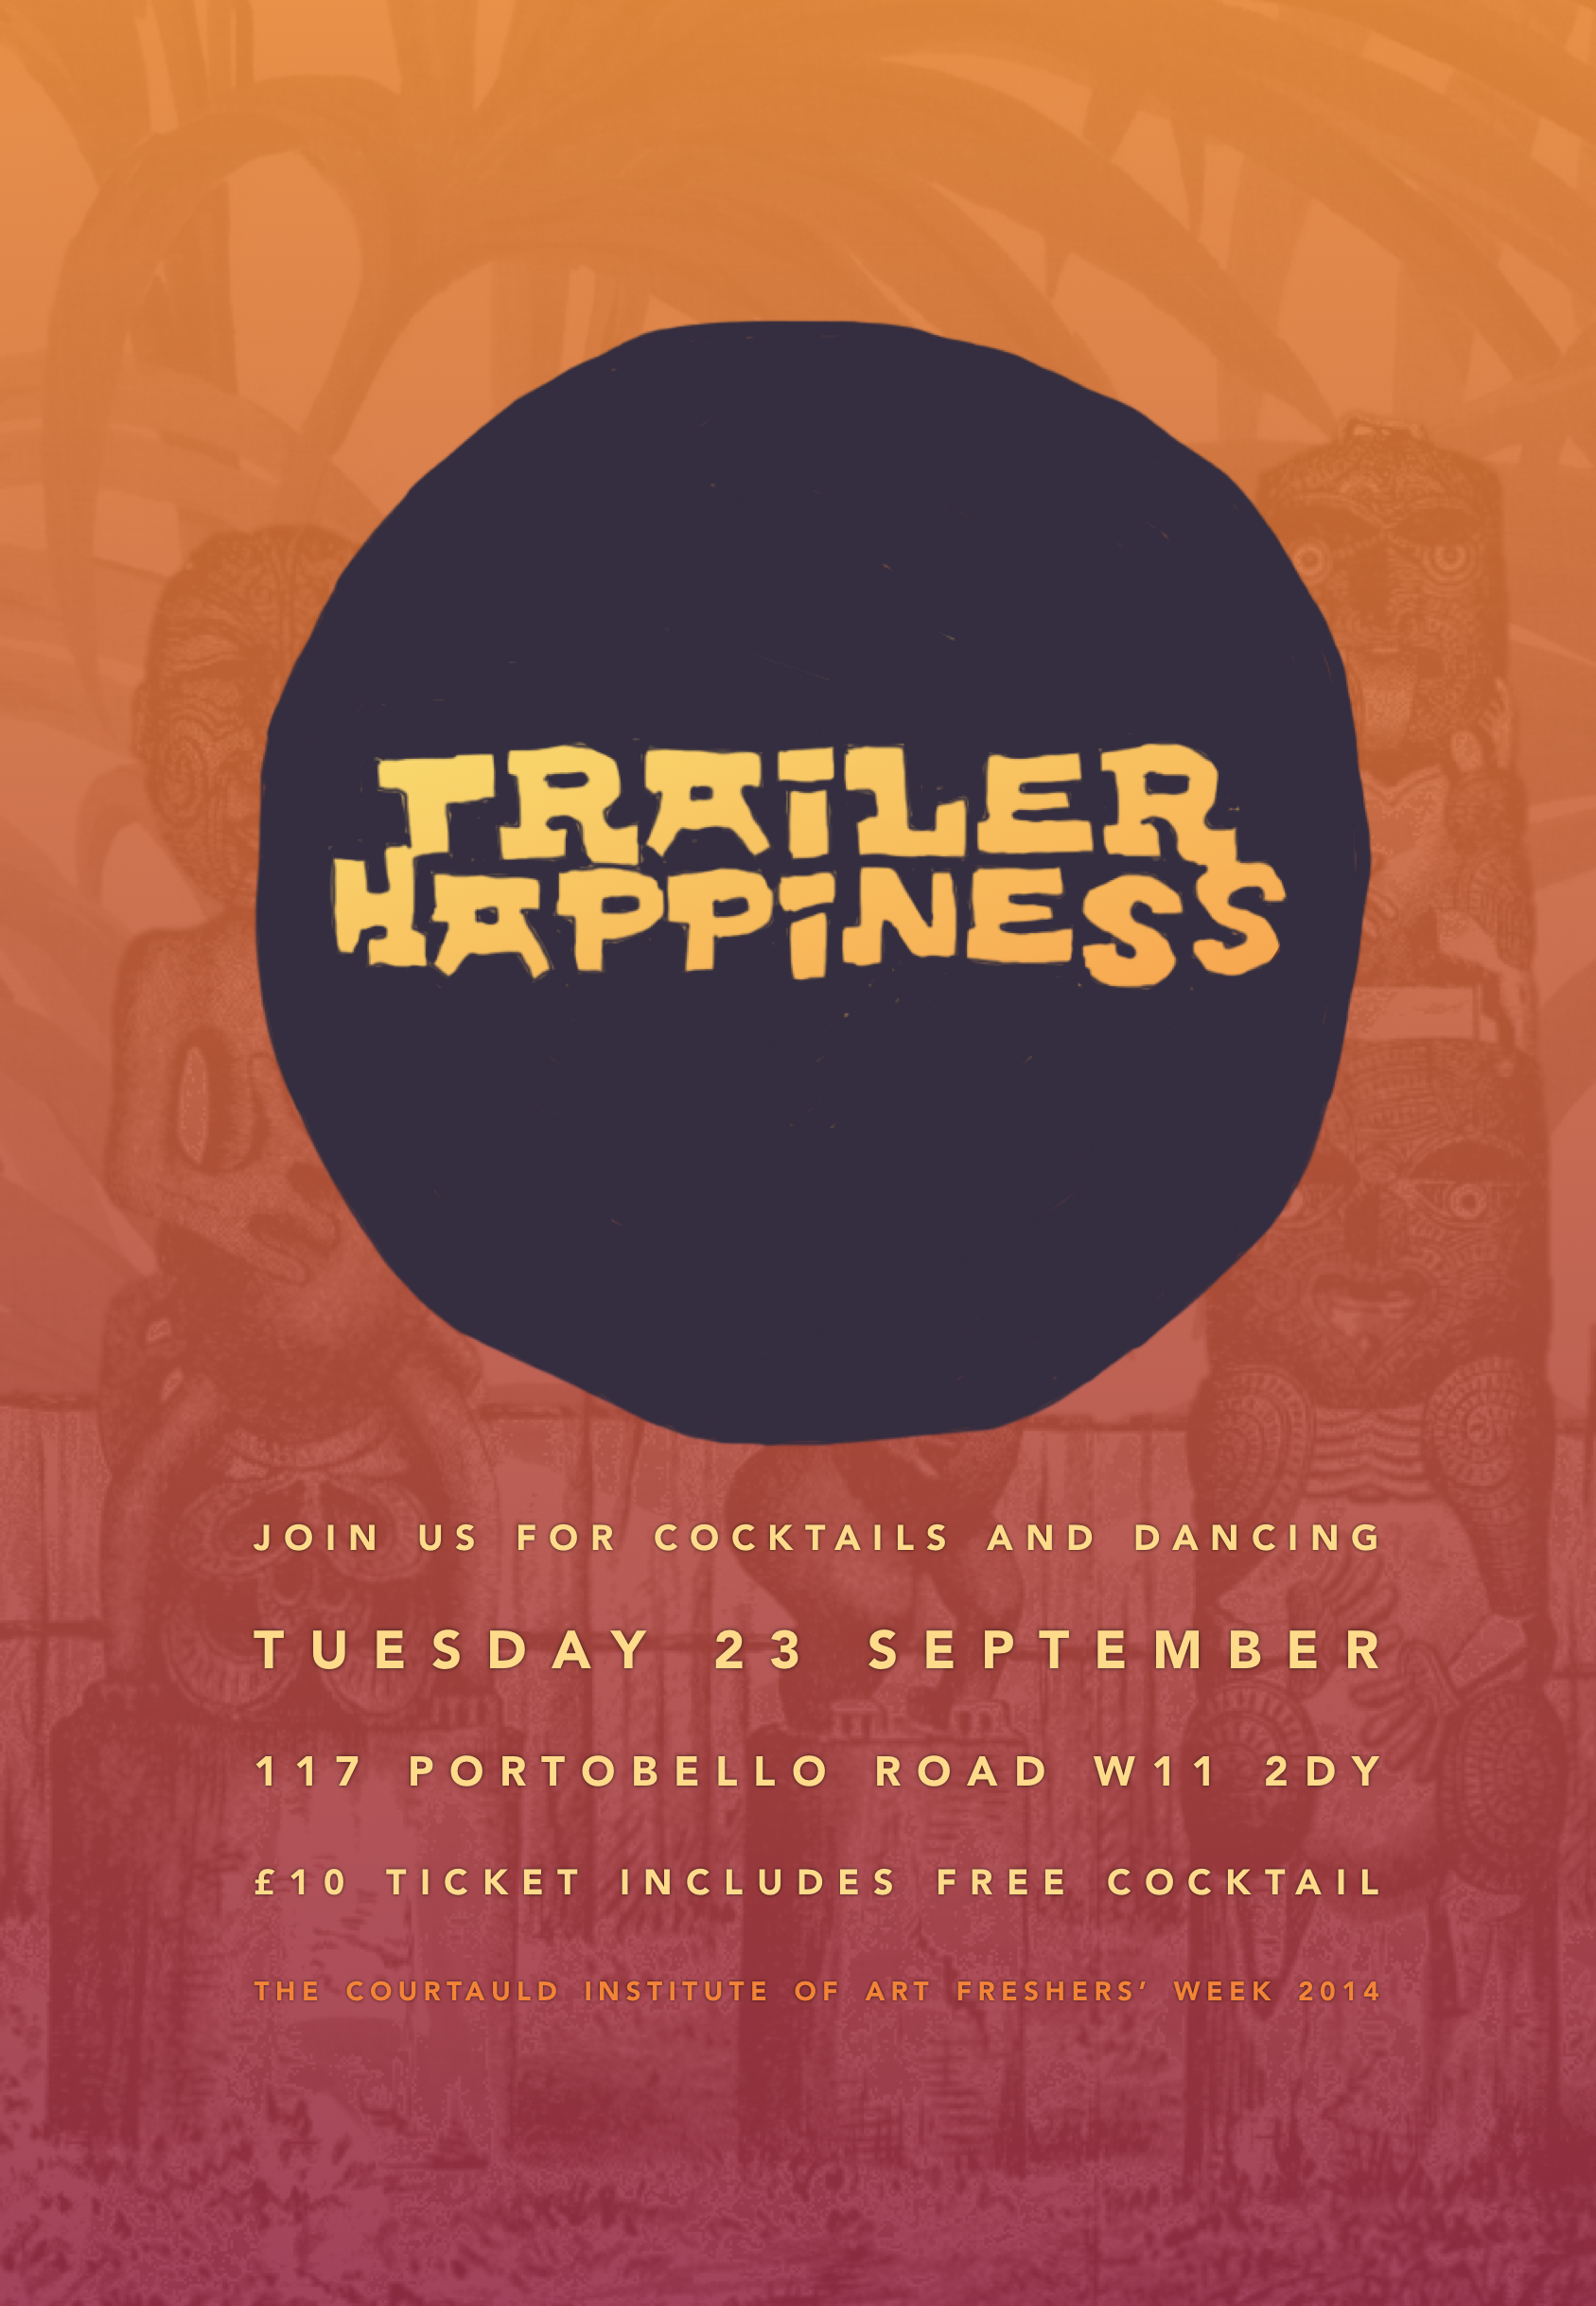 2 Tuesday 2 Trailer Happiness